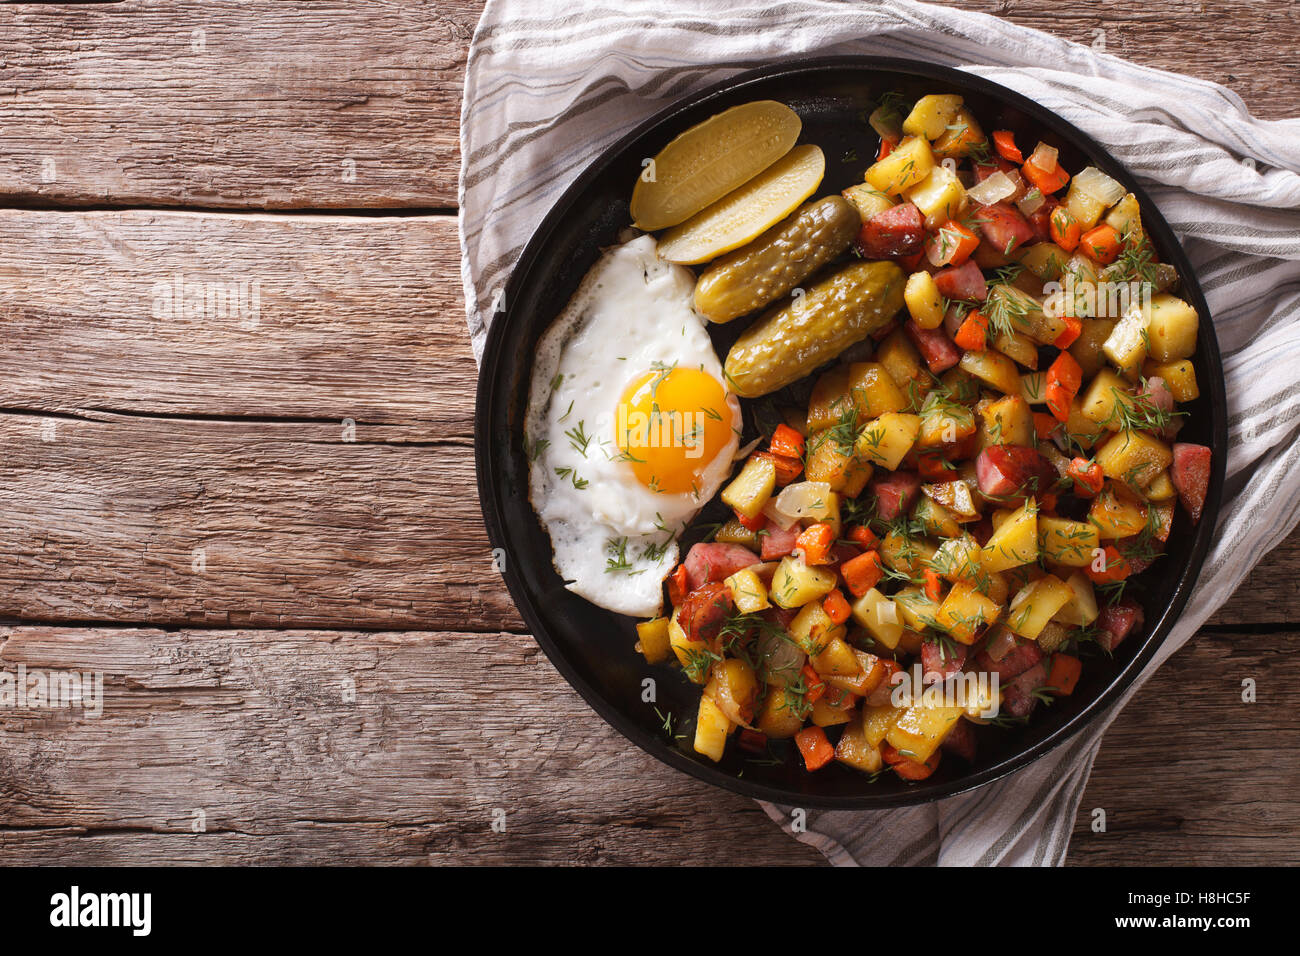 Finnish food pyttipannu: fried potatoes with sausages, eggs and pickled cucumbers close-up on a plate. Horizontal - Stock Image